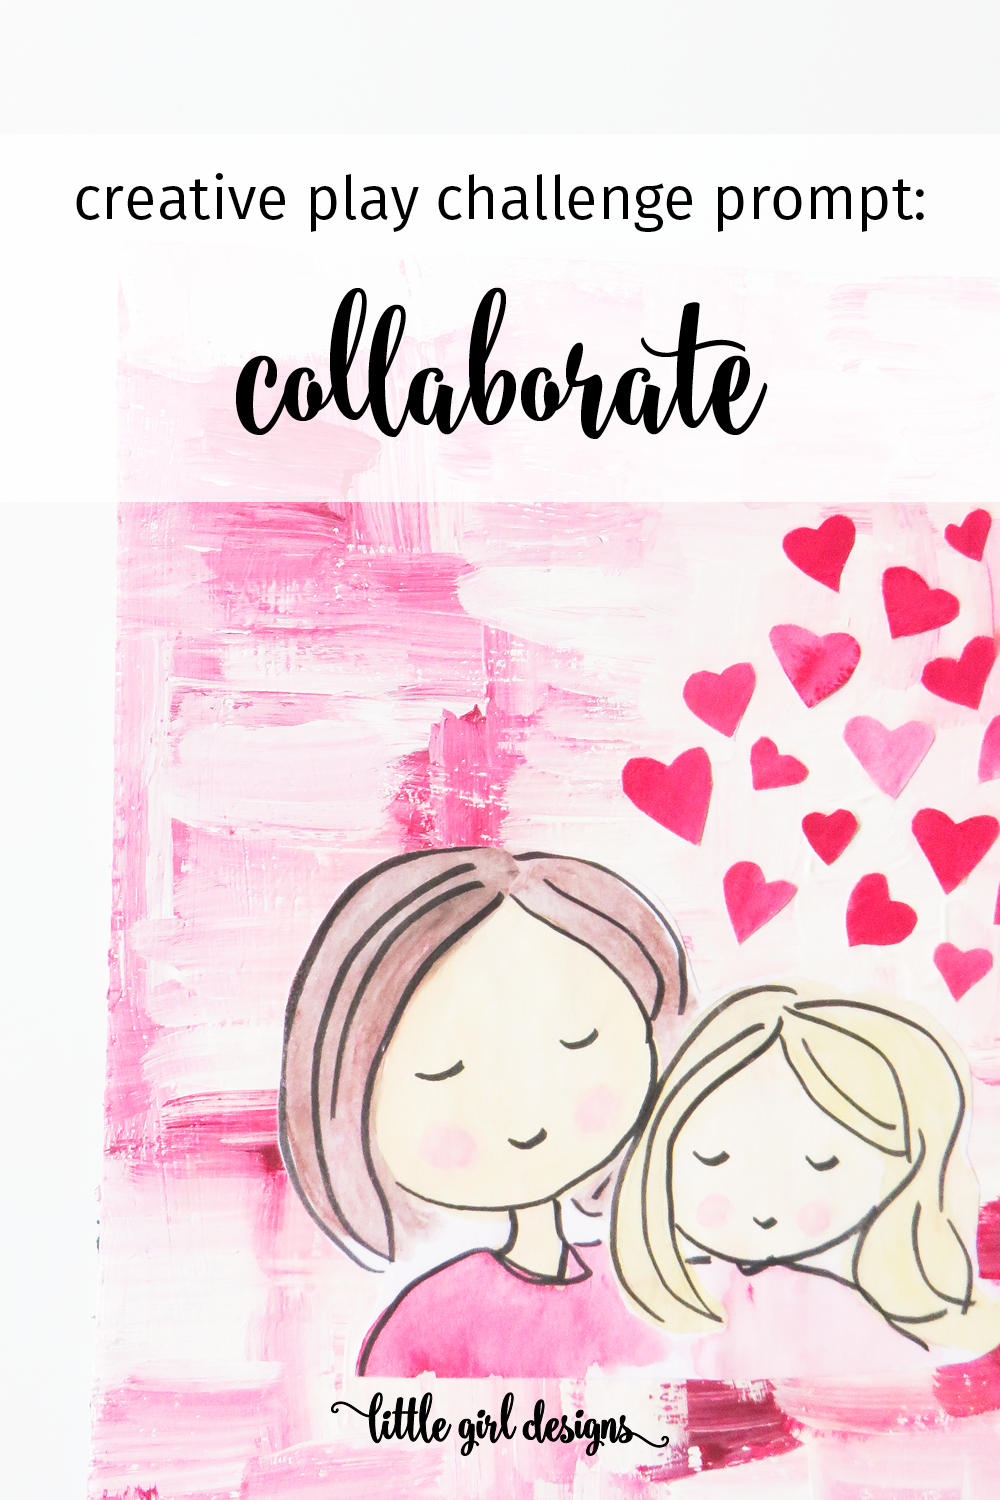 This week's prompt in the FREE creative play challenge is to collaborate with a friend. Here are some tips on how to make collaboration fun for both of you!